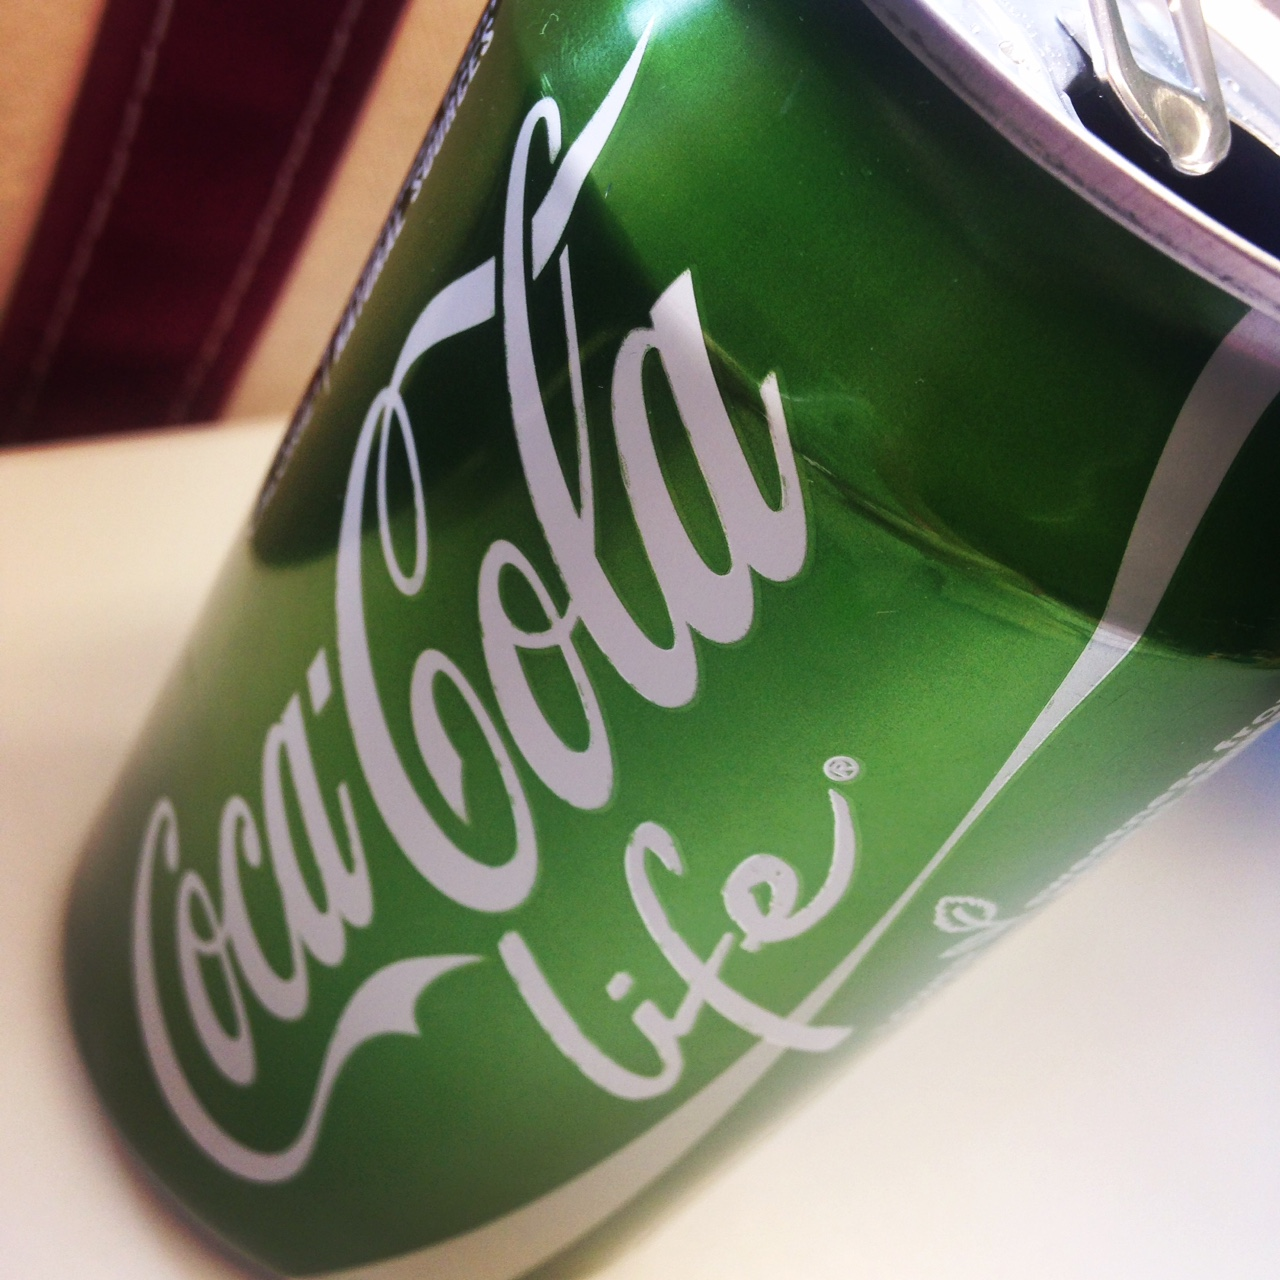 www.lovetobefit.de-tested: Coca Cola life!